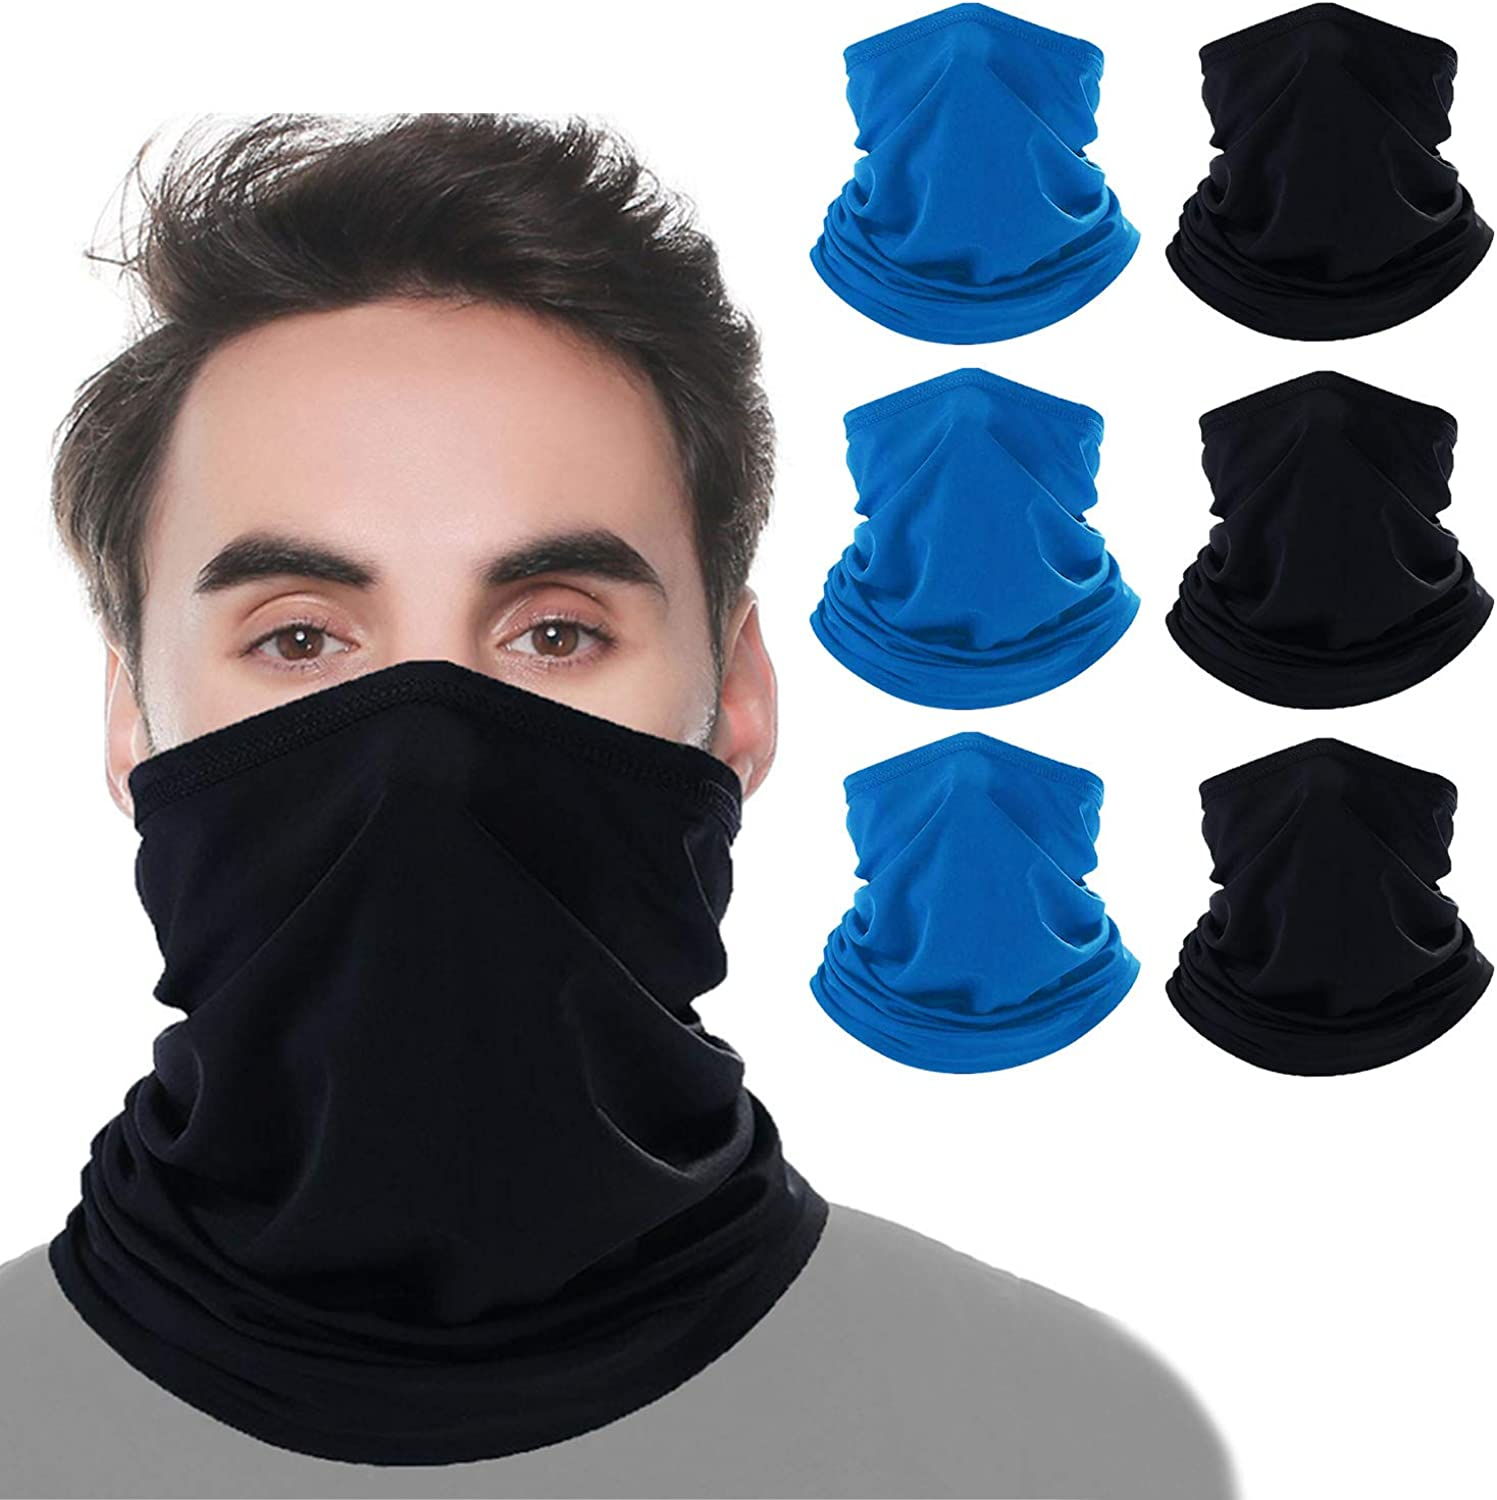 UV Face Mask Protection Windproof Scarf for Sports/&Outdoor Headband Cooling Head Wrap for Men//Woman KERTIN Multi-Cool Neck Gaiter Summer Face Mask Reusable